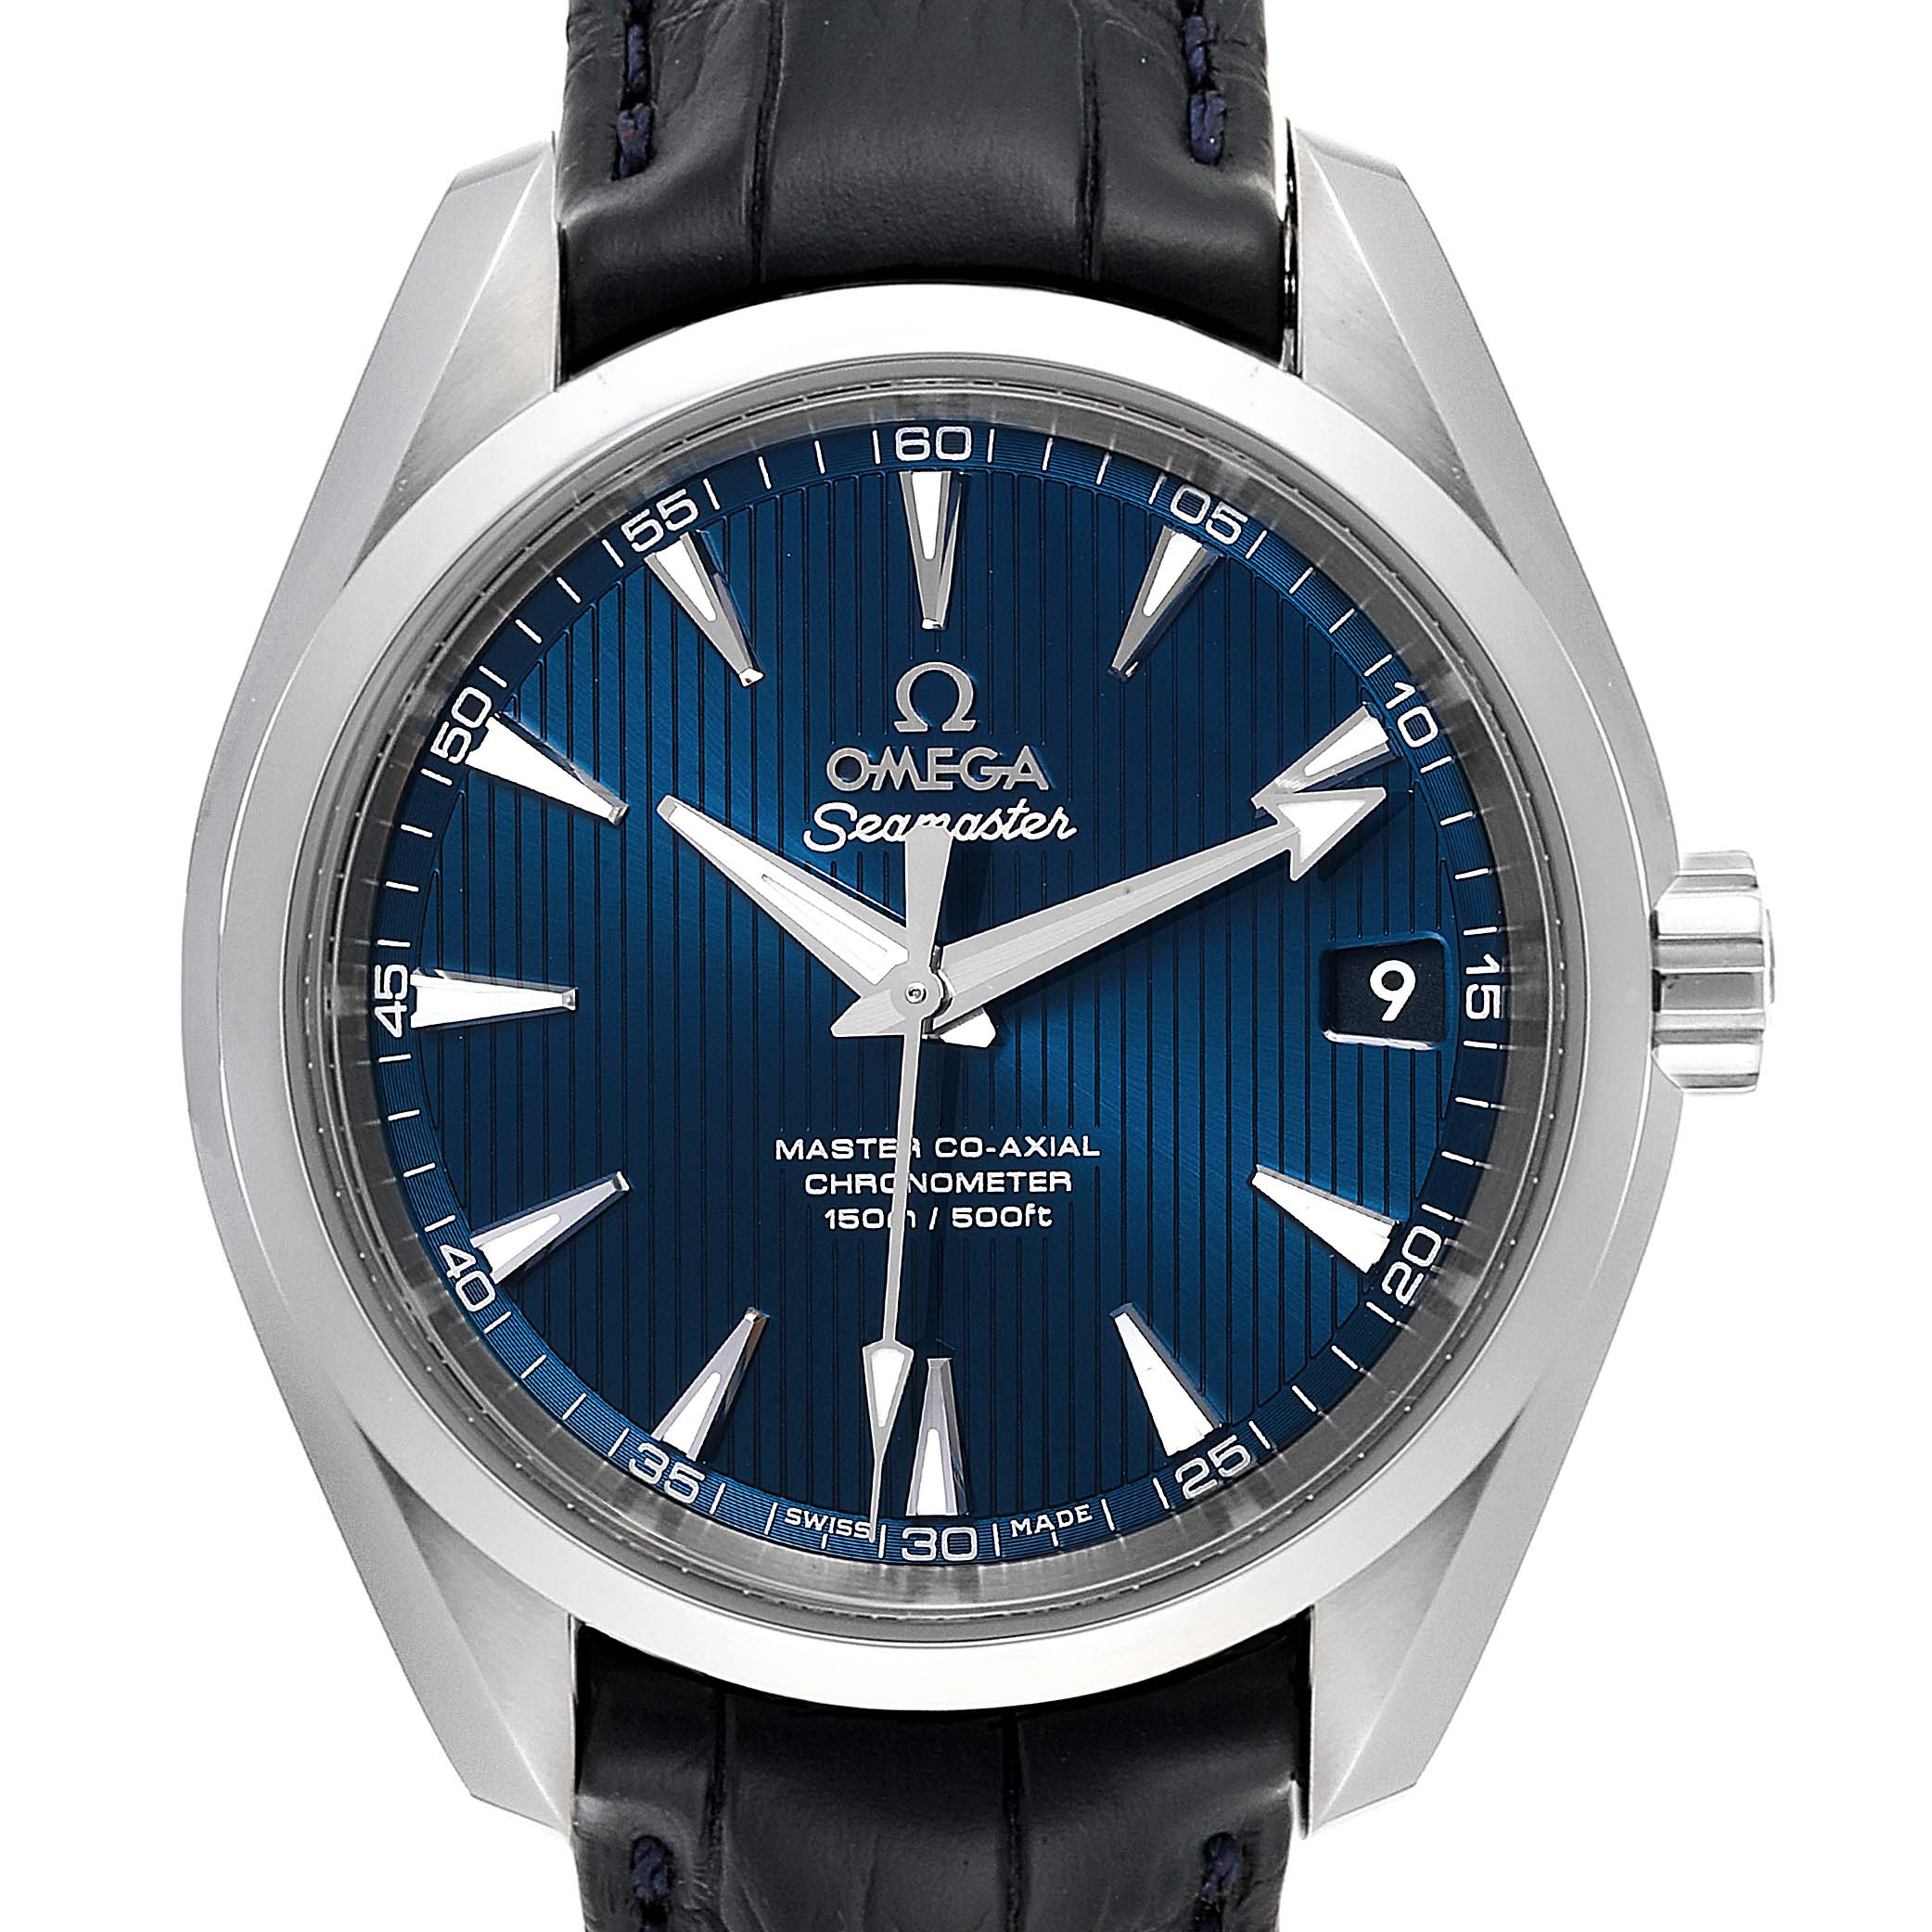 Omega Seamaster Aqua Terra Blue Dial Watch 231.13.39.21.03.001 Box Card SwissWatchExpo